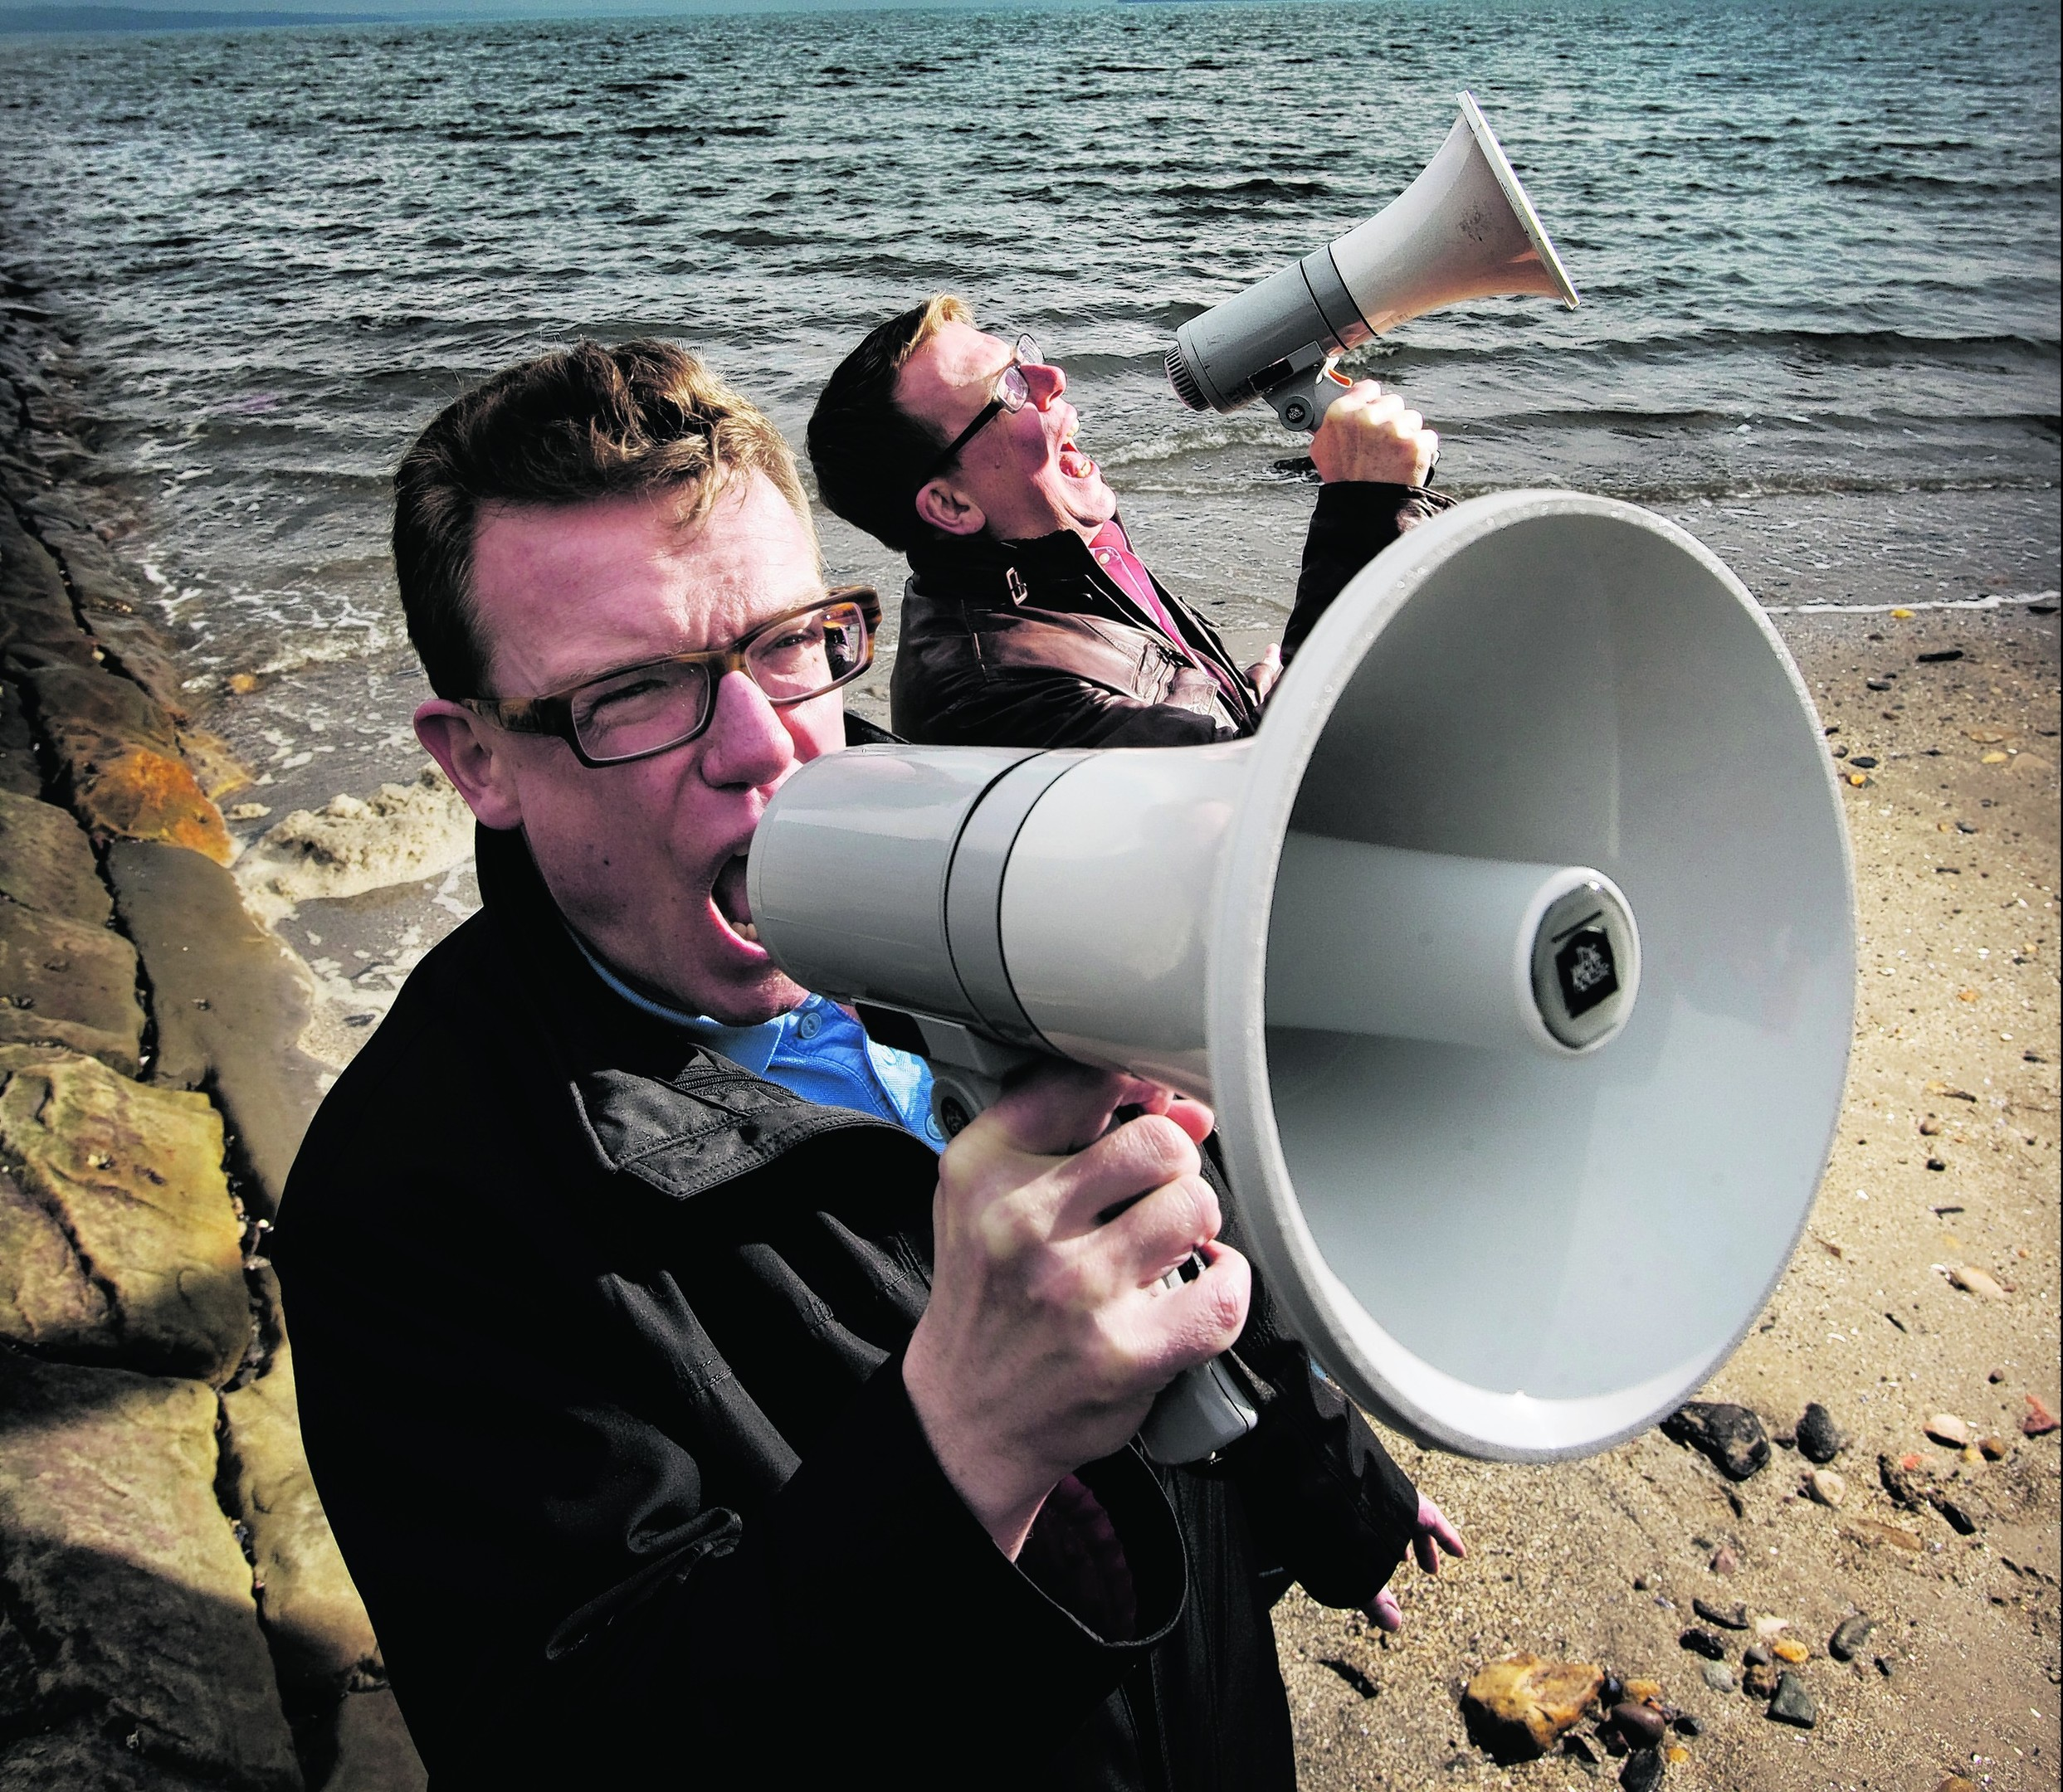 Sunshine on Leith is based on the music of The Proclaimers